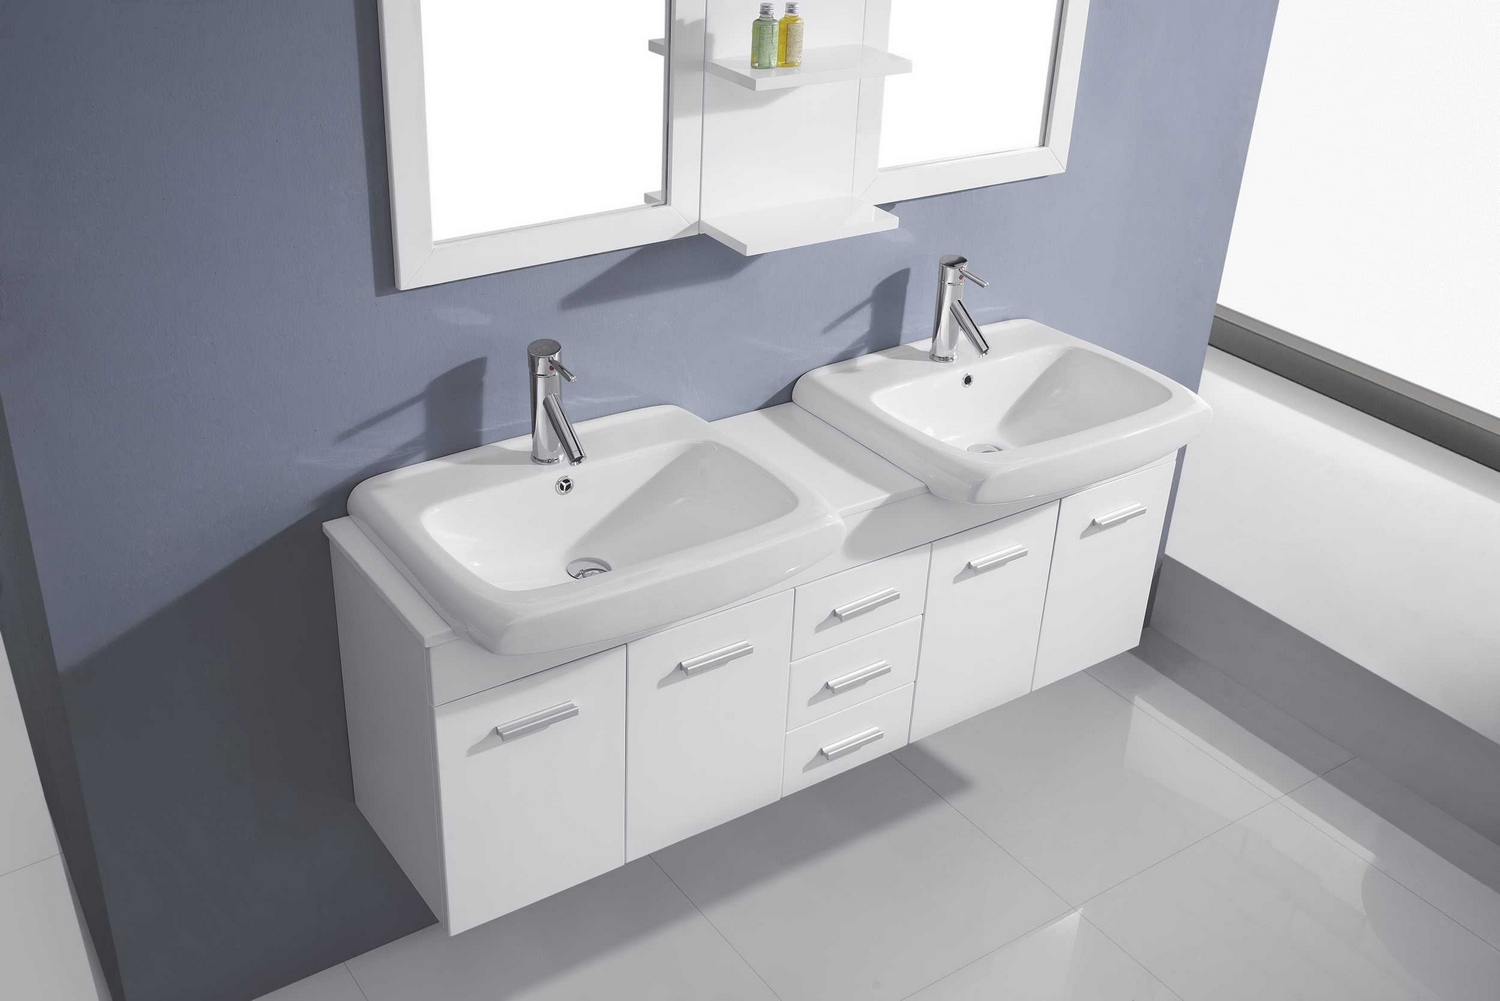 Virtu Usa Ophelia 59 Double Bathroom Vanity Cabinet Set